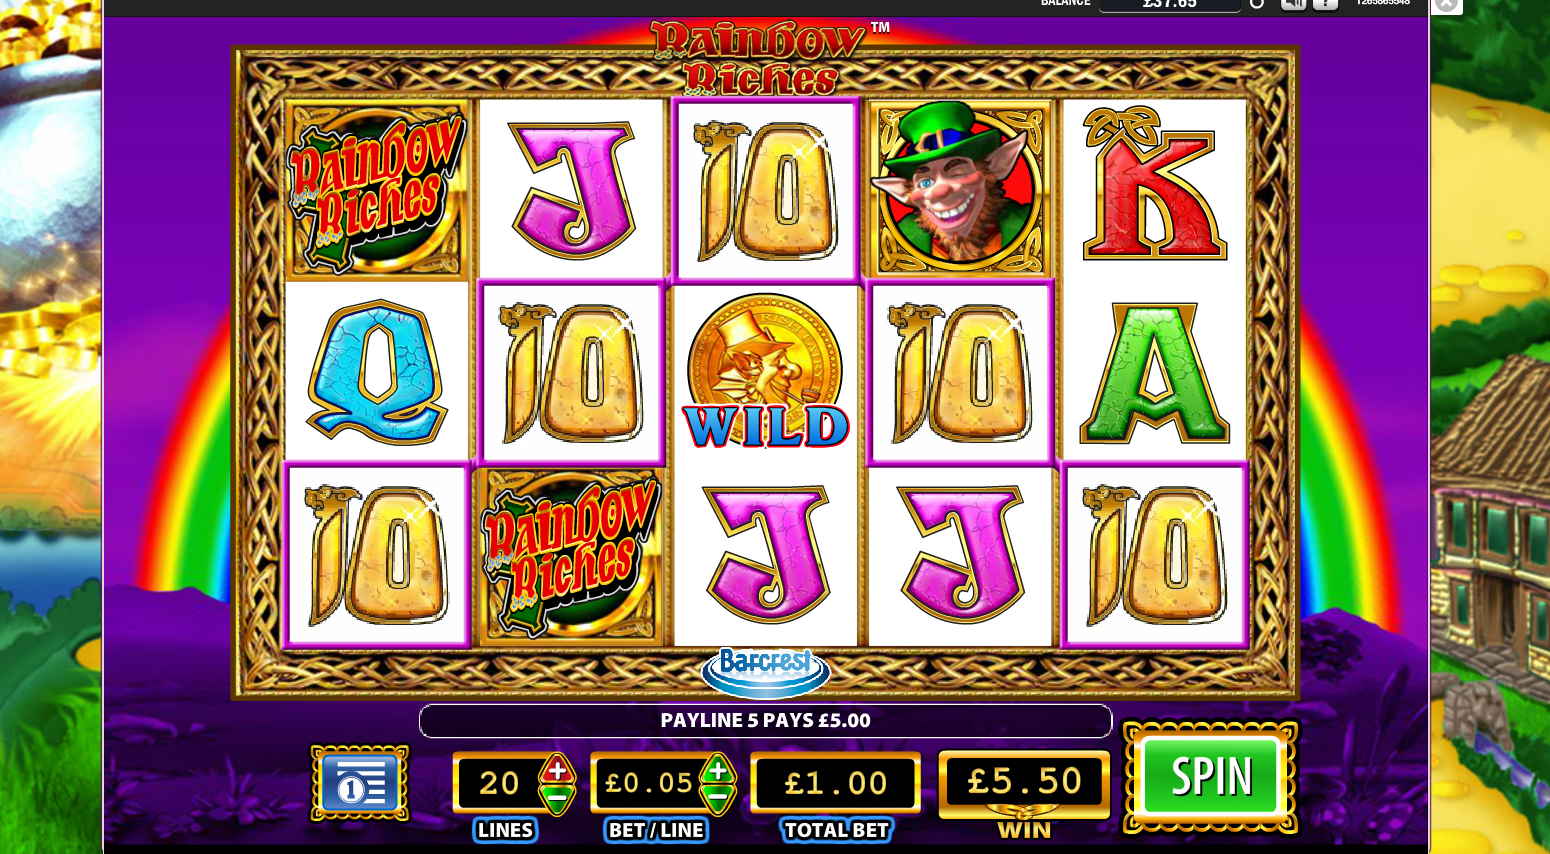 Play Rainbow Riches Slot at Crown Bingo